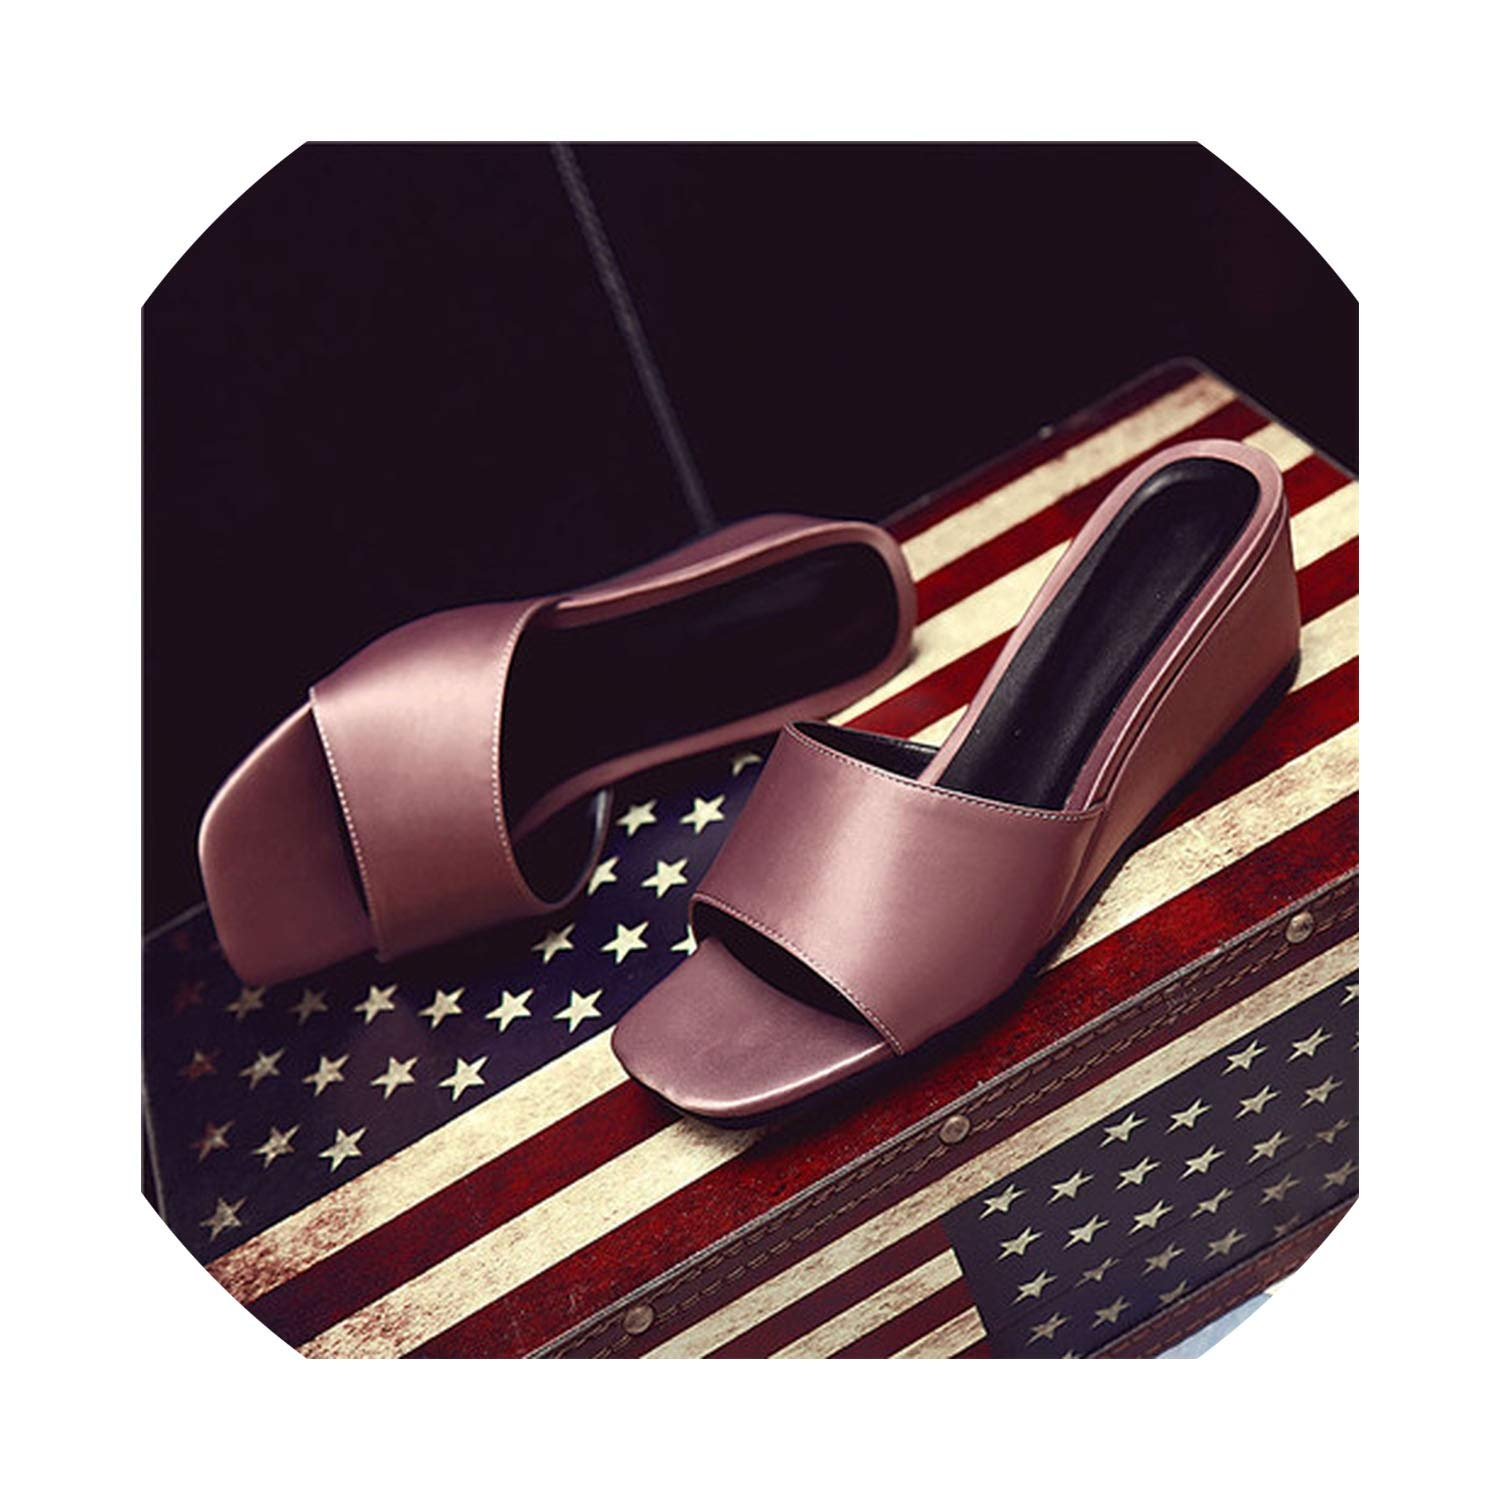 2 goldsmyth Black Low Slippers Summer Ladies New Leather Wedge Heel Outside Slides Flat Sandals